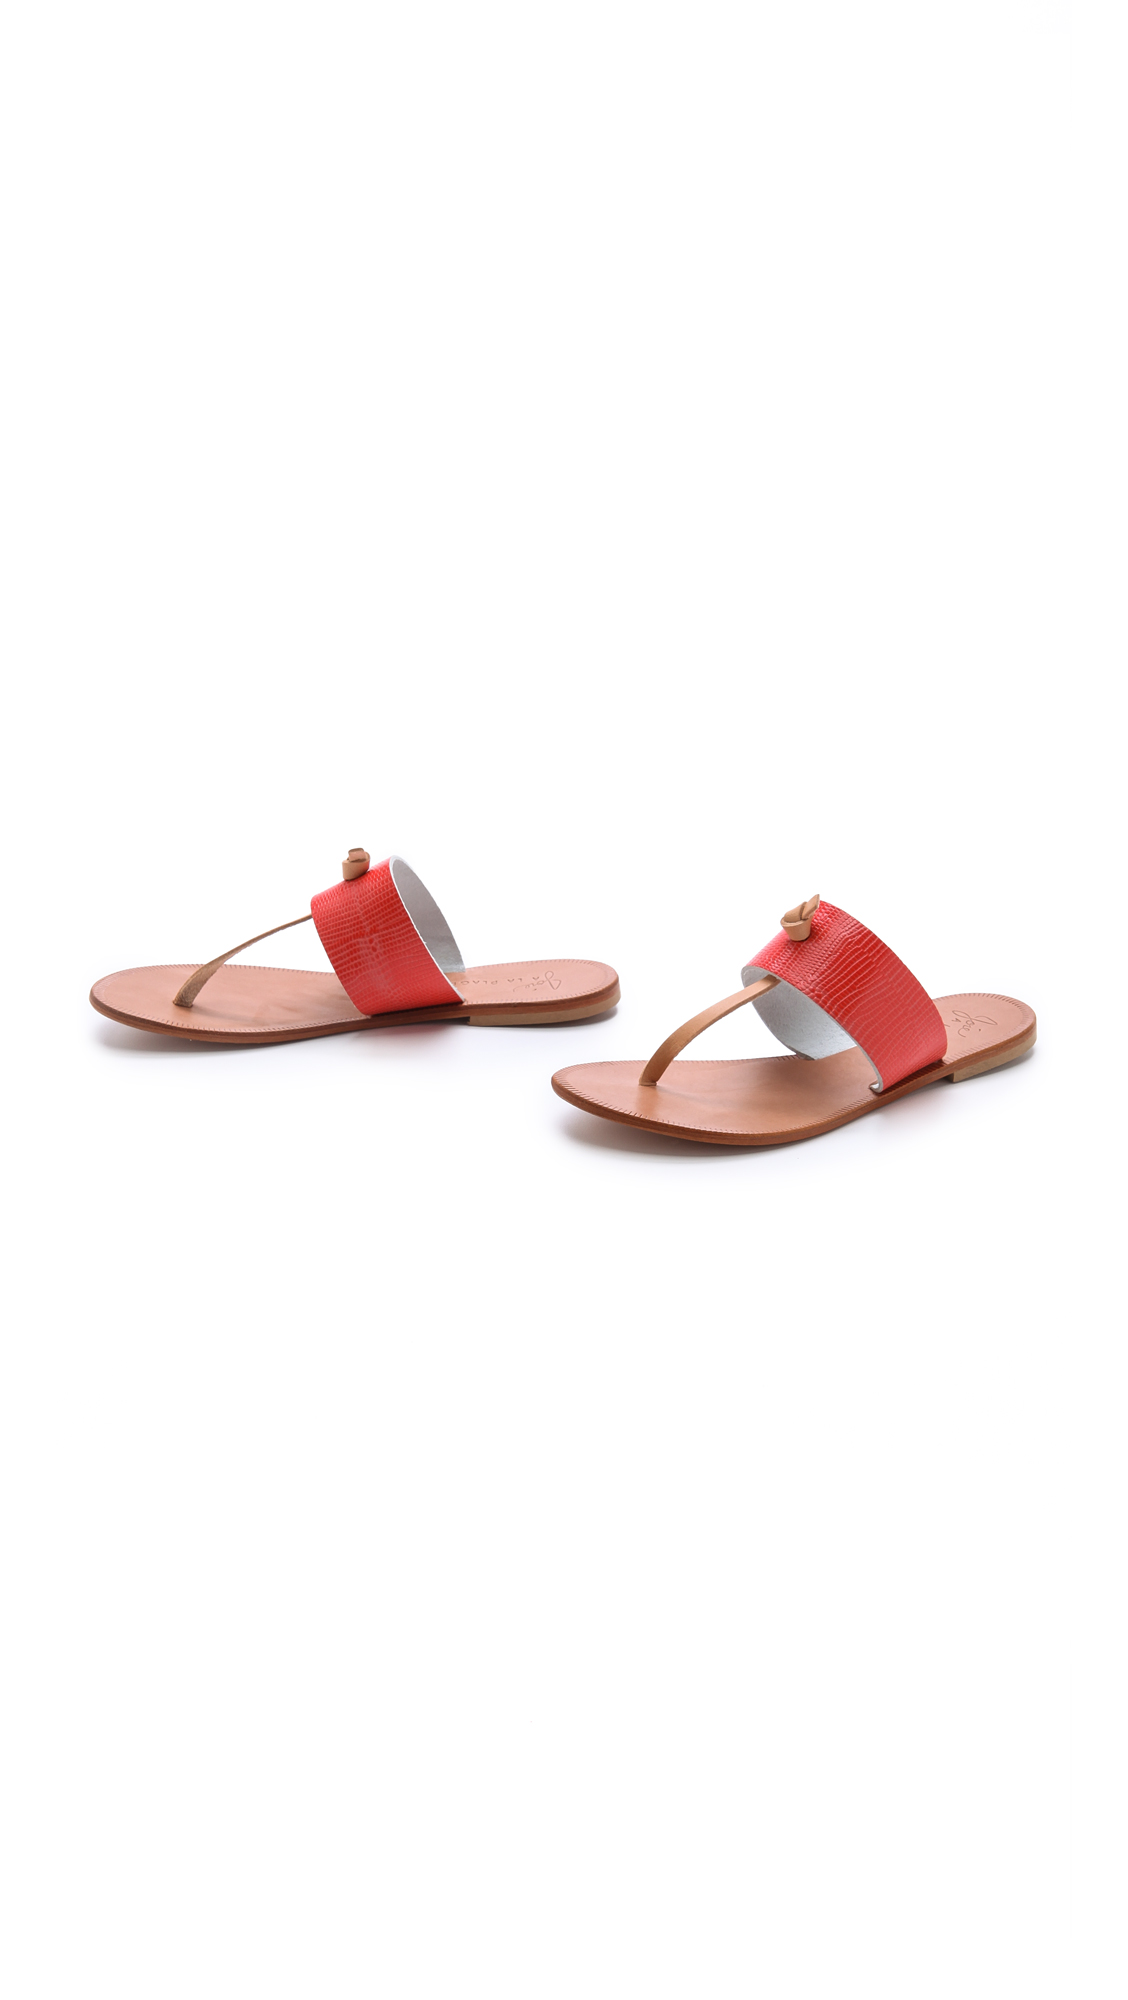 Joie A La Plage Nice Thong Sandals In Red Lyst